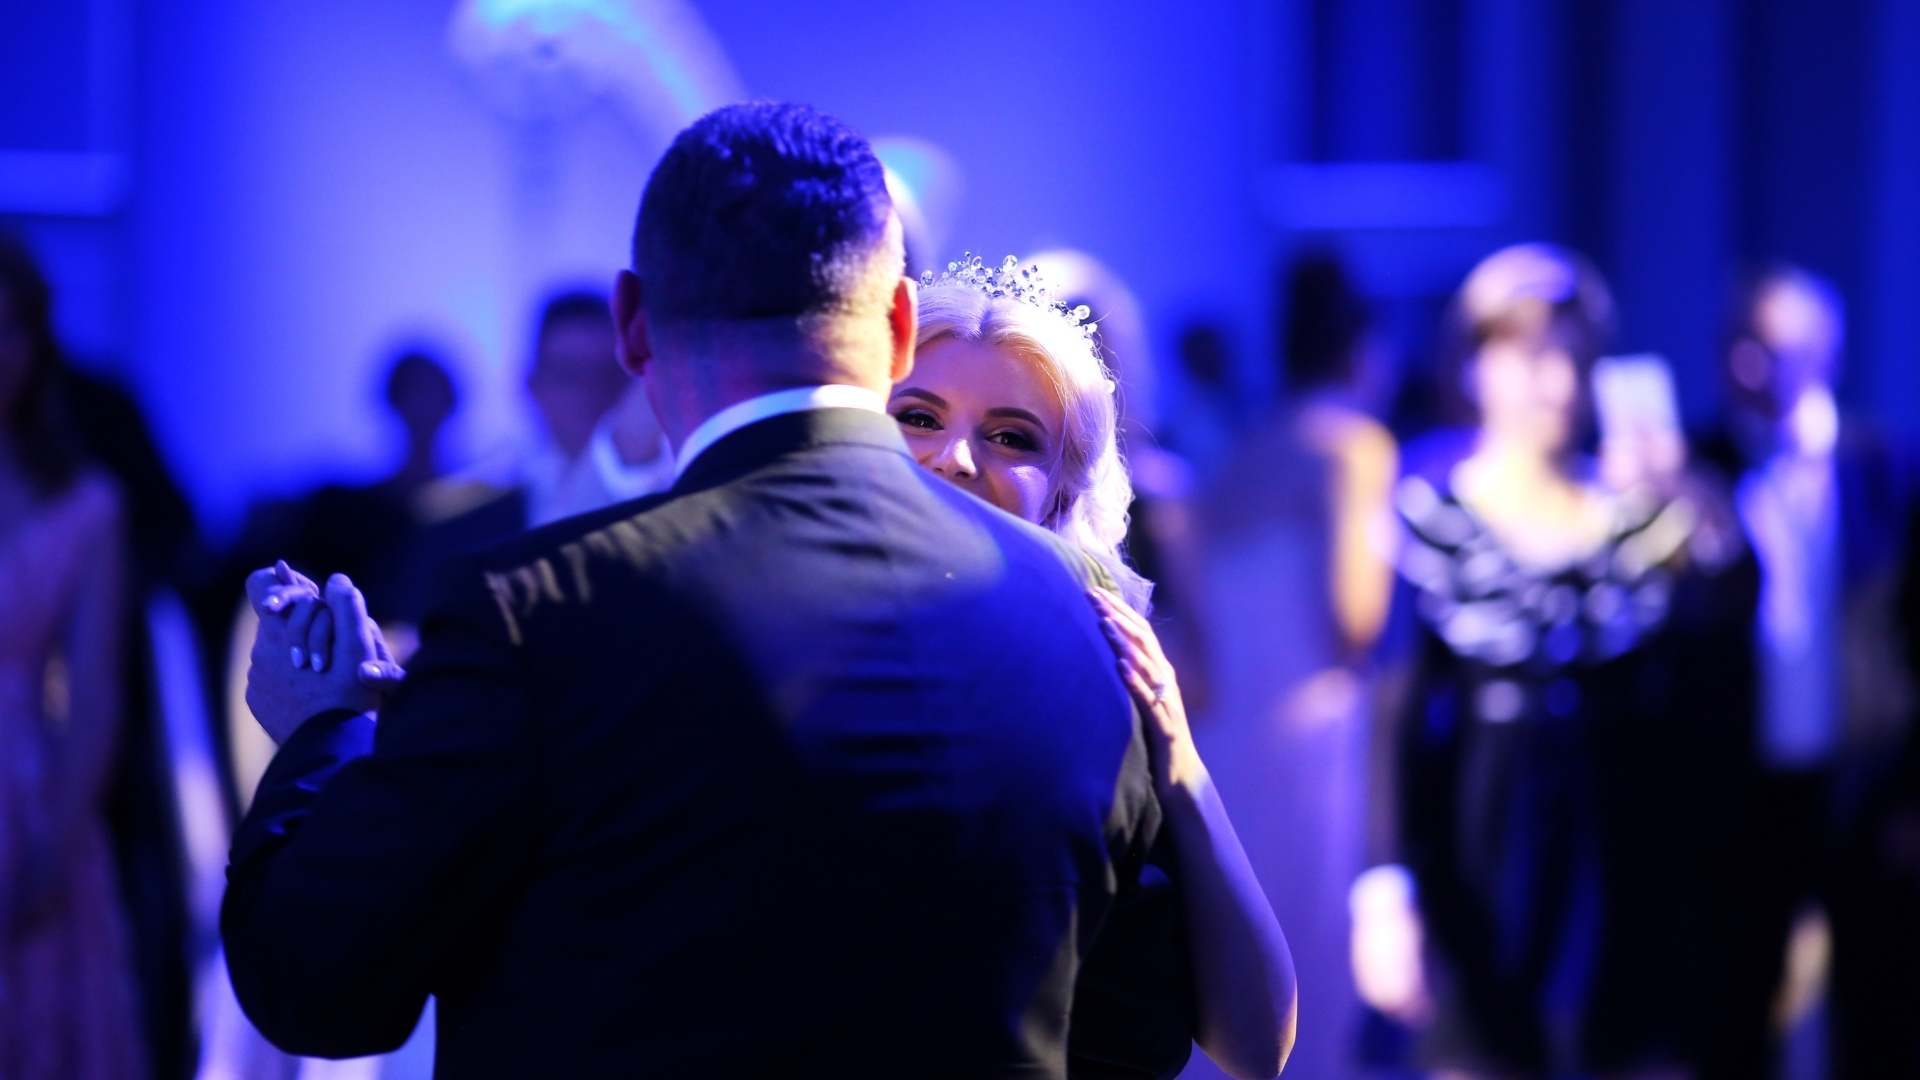 Utilize A Music Search For Your Wedding